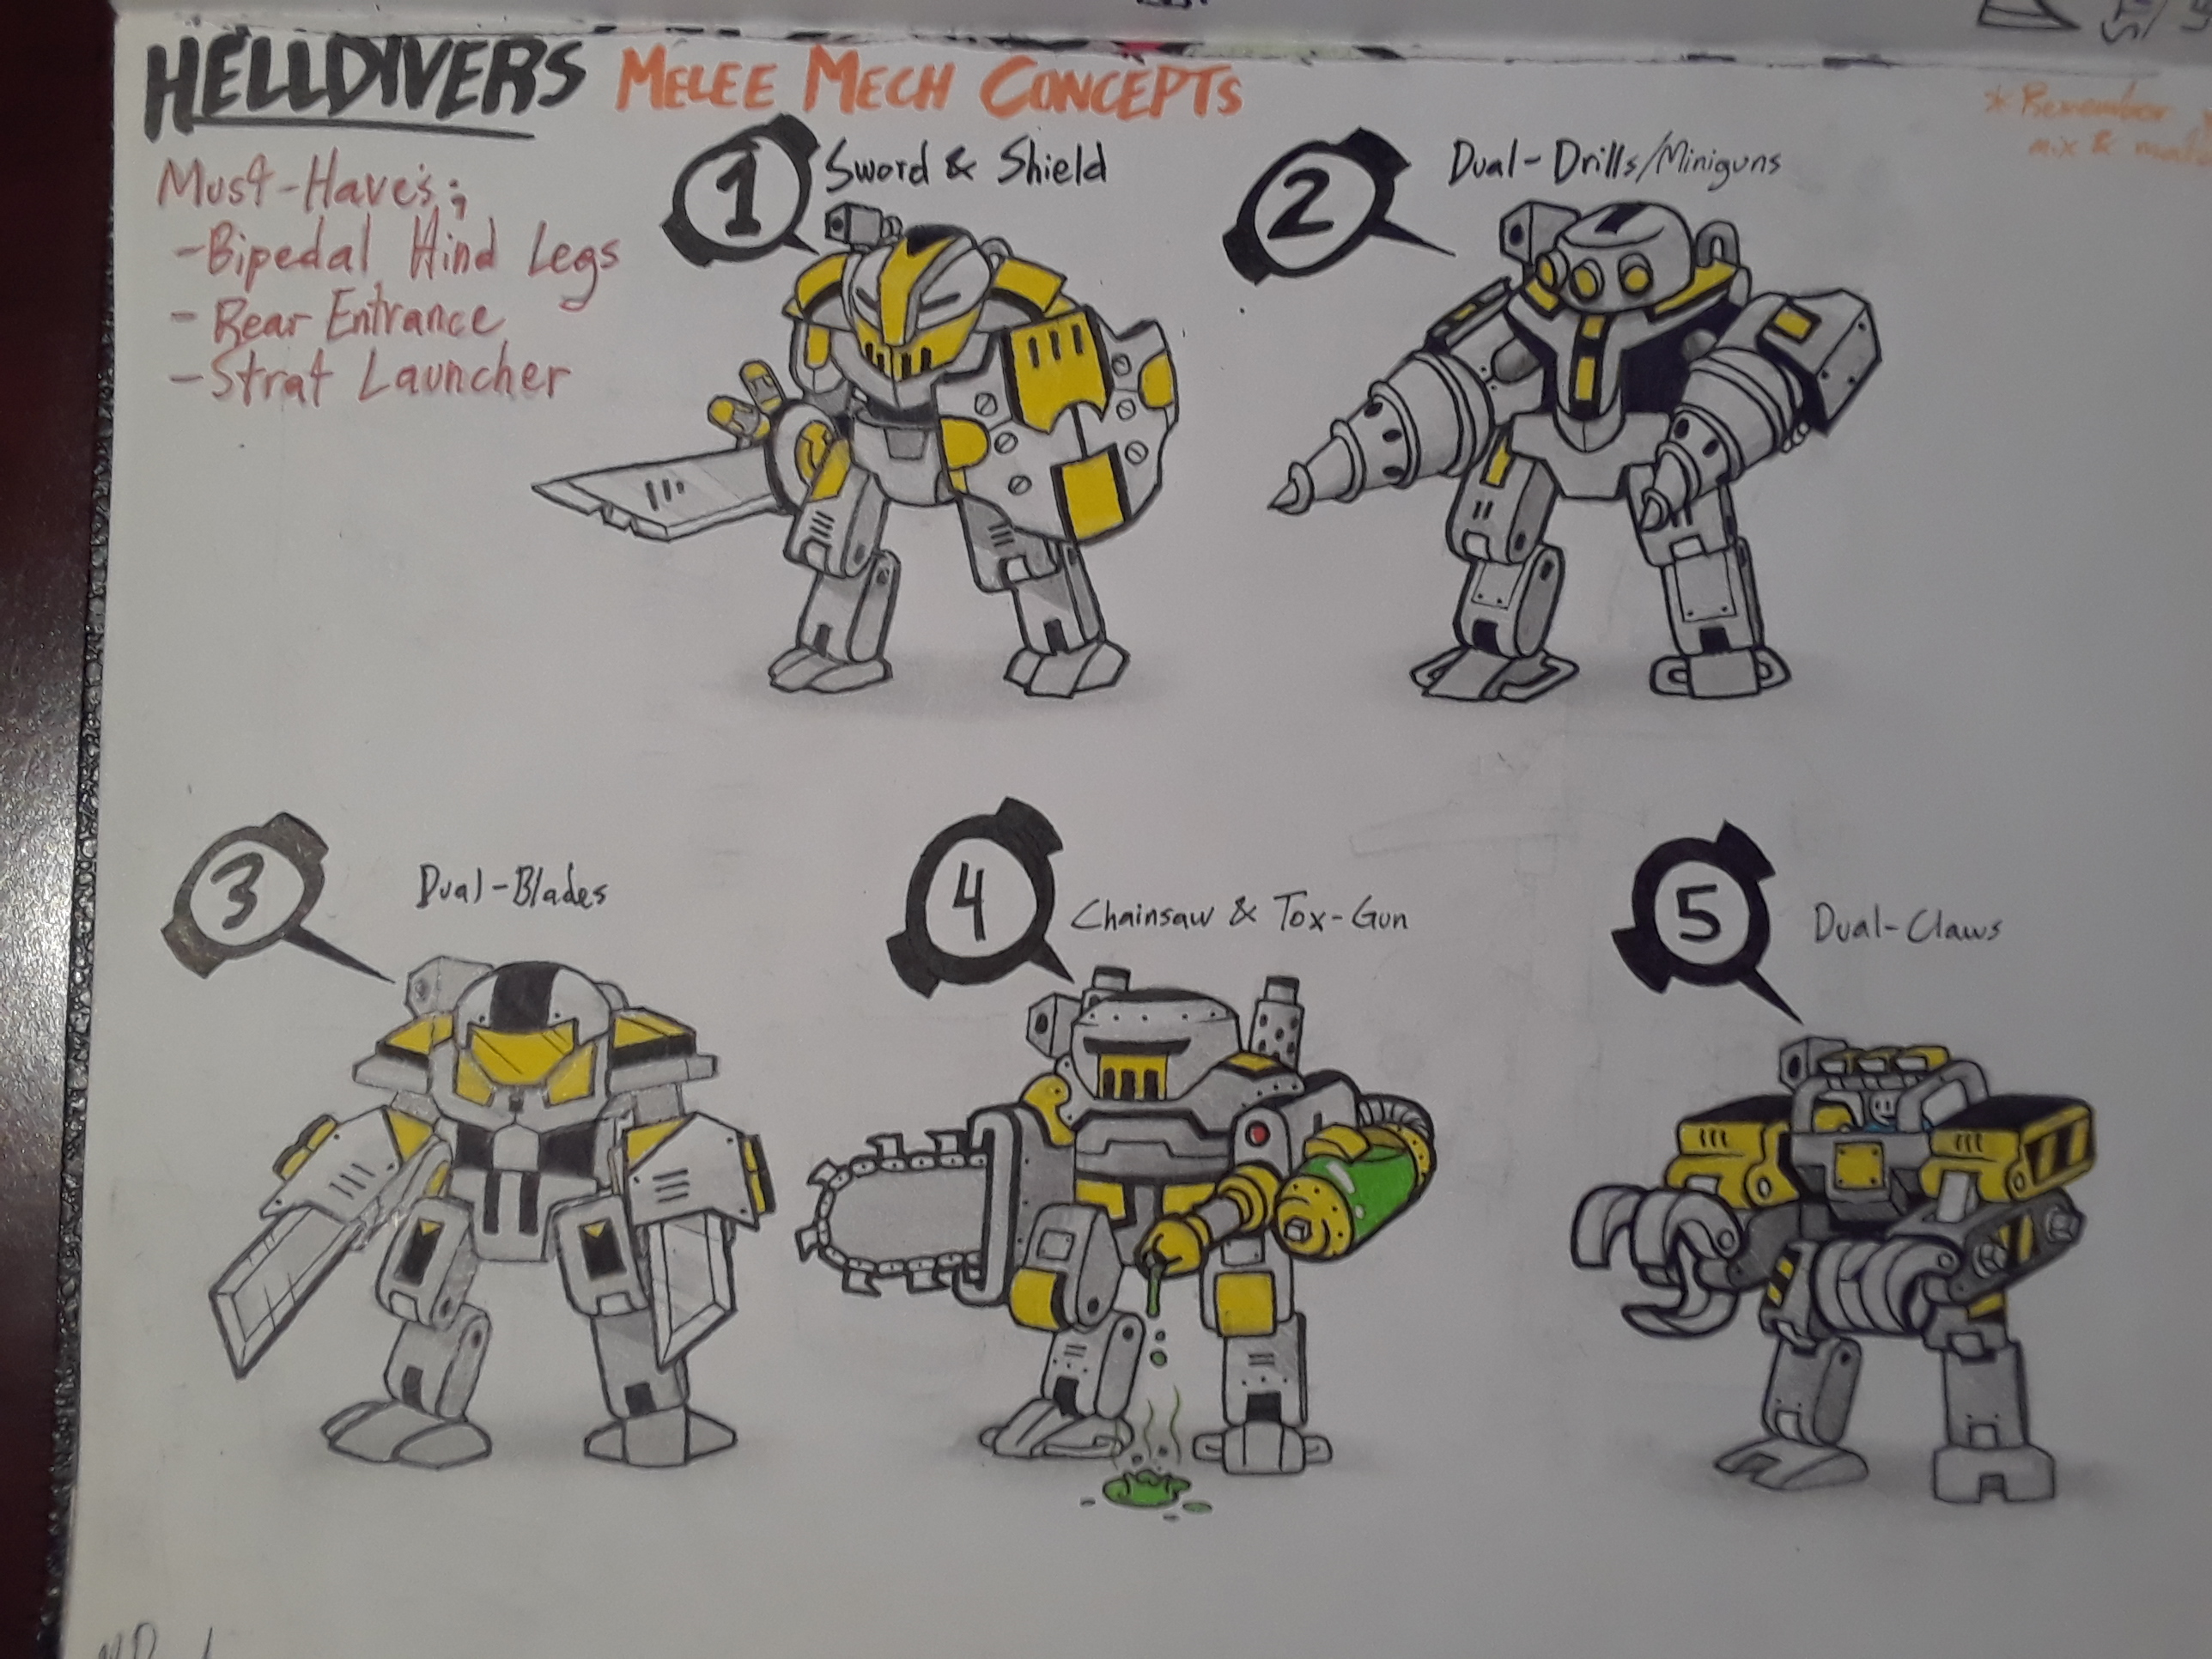 HELLDIVERS - Melee Mechs (Concepts)